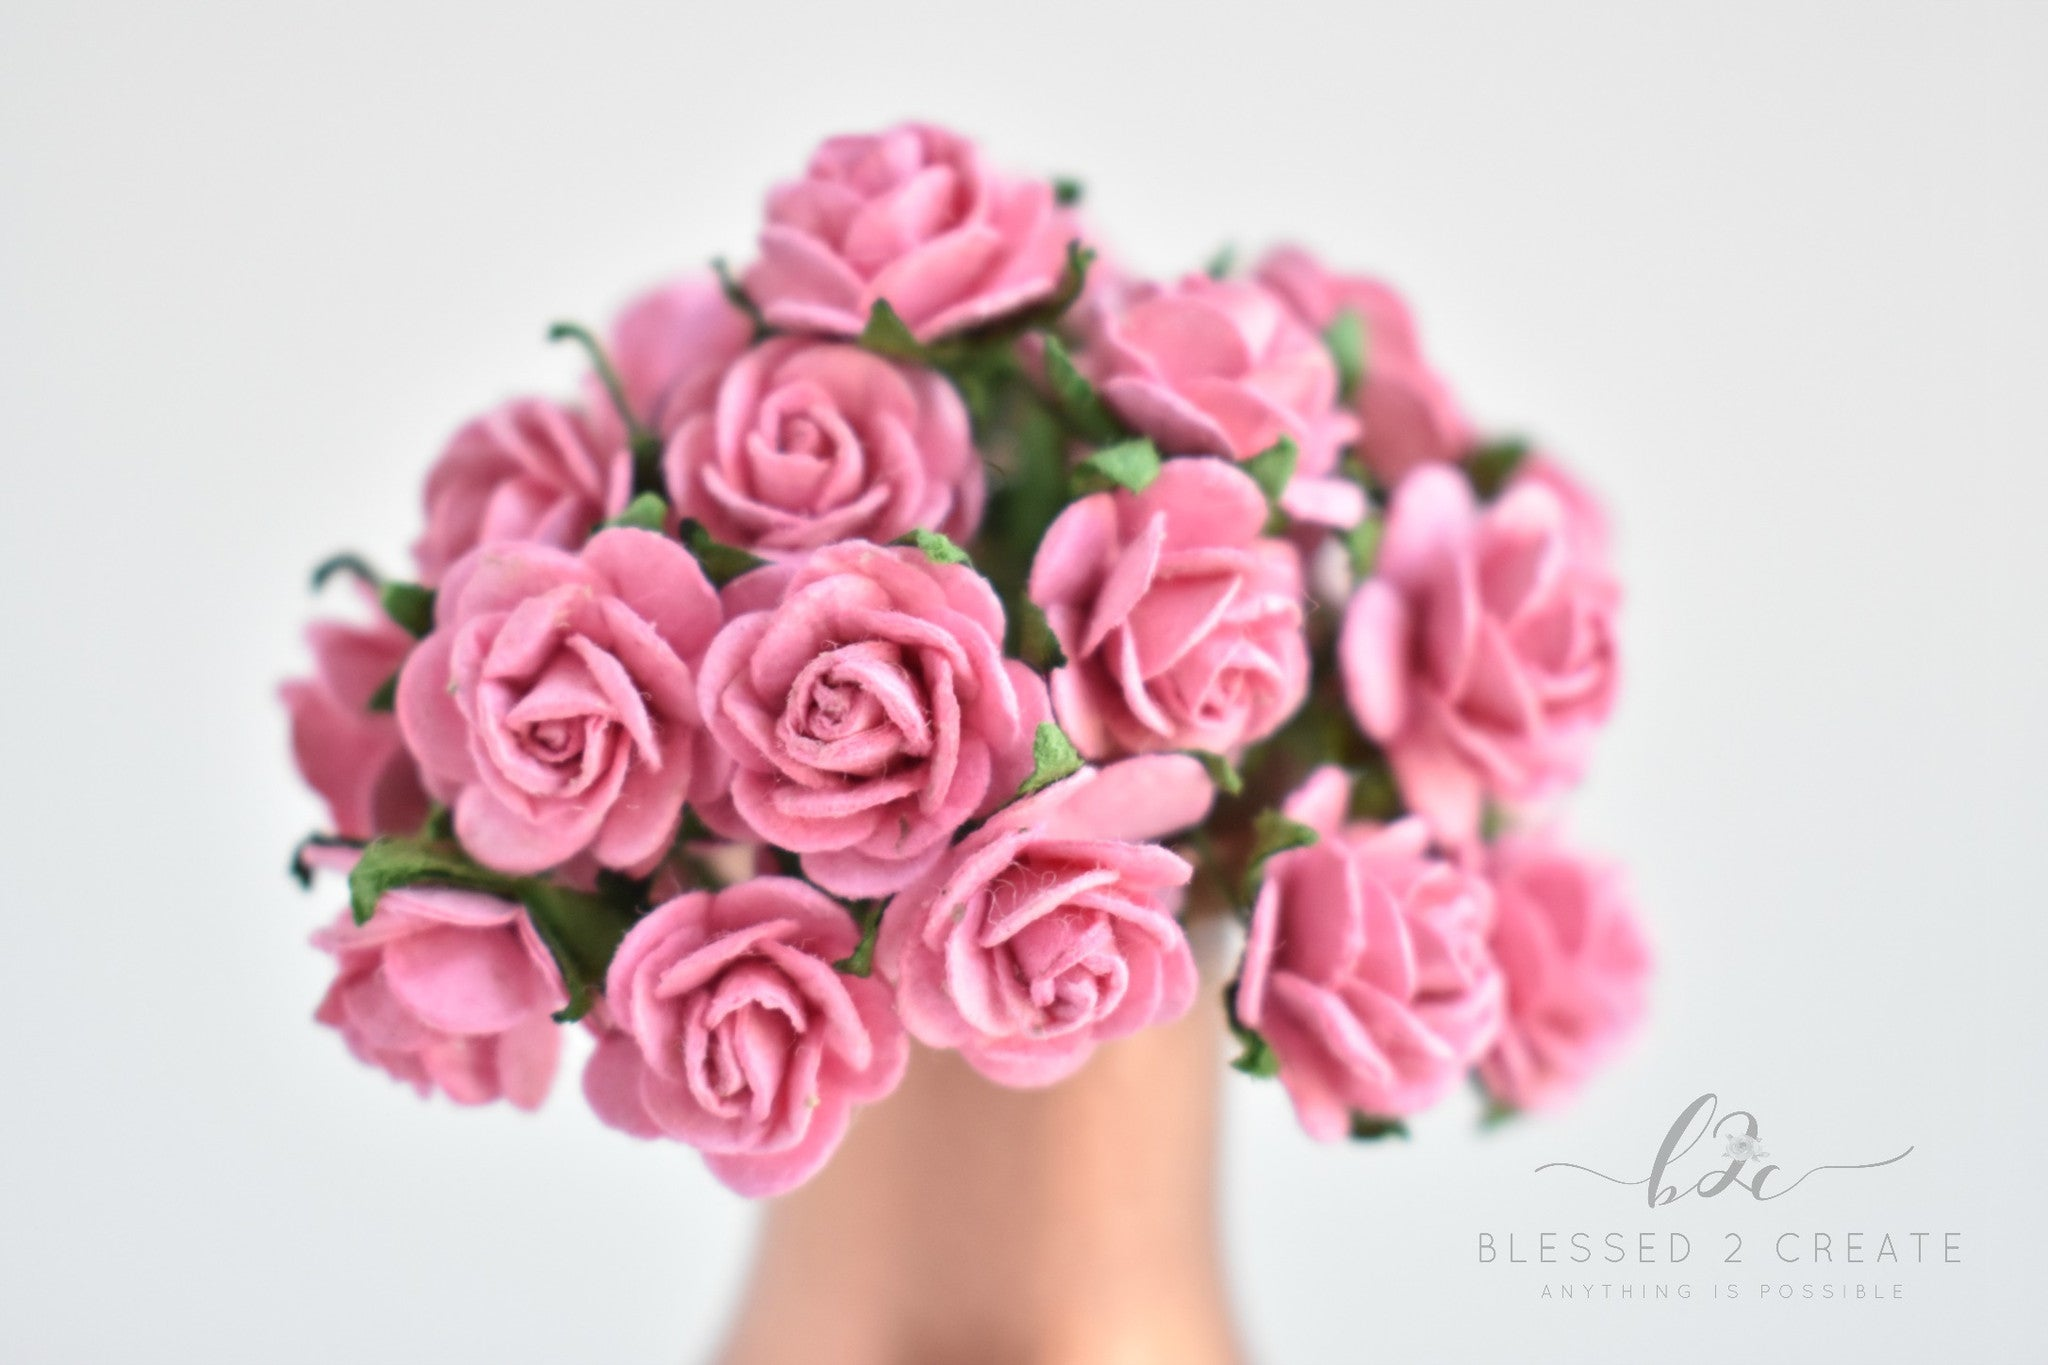 10 15mm pink rose mulberry paper flowers sprinkledwithfunfetti 10 15mm pink rose mulberry paper flowers mightylinksfo